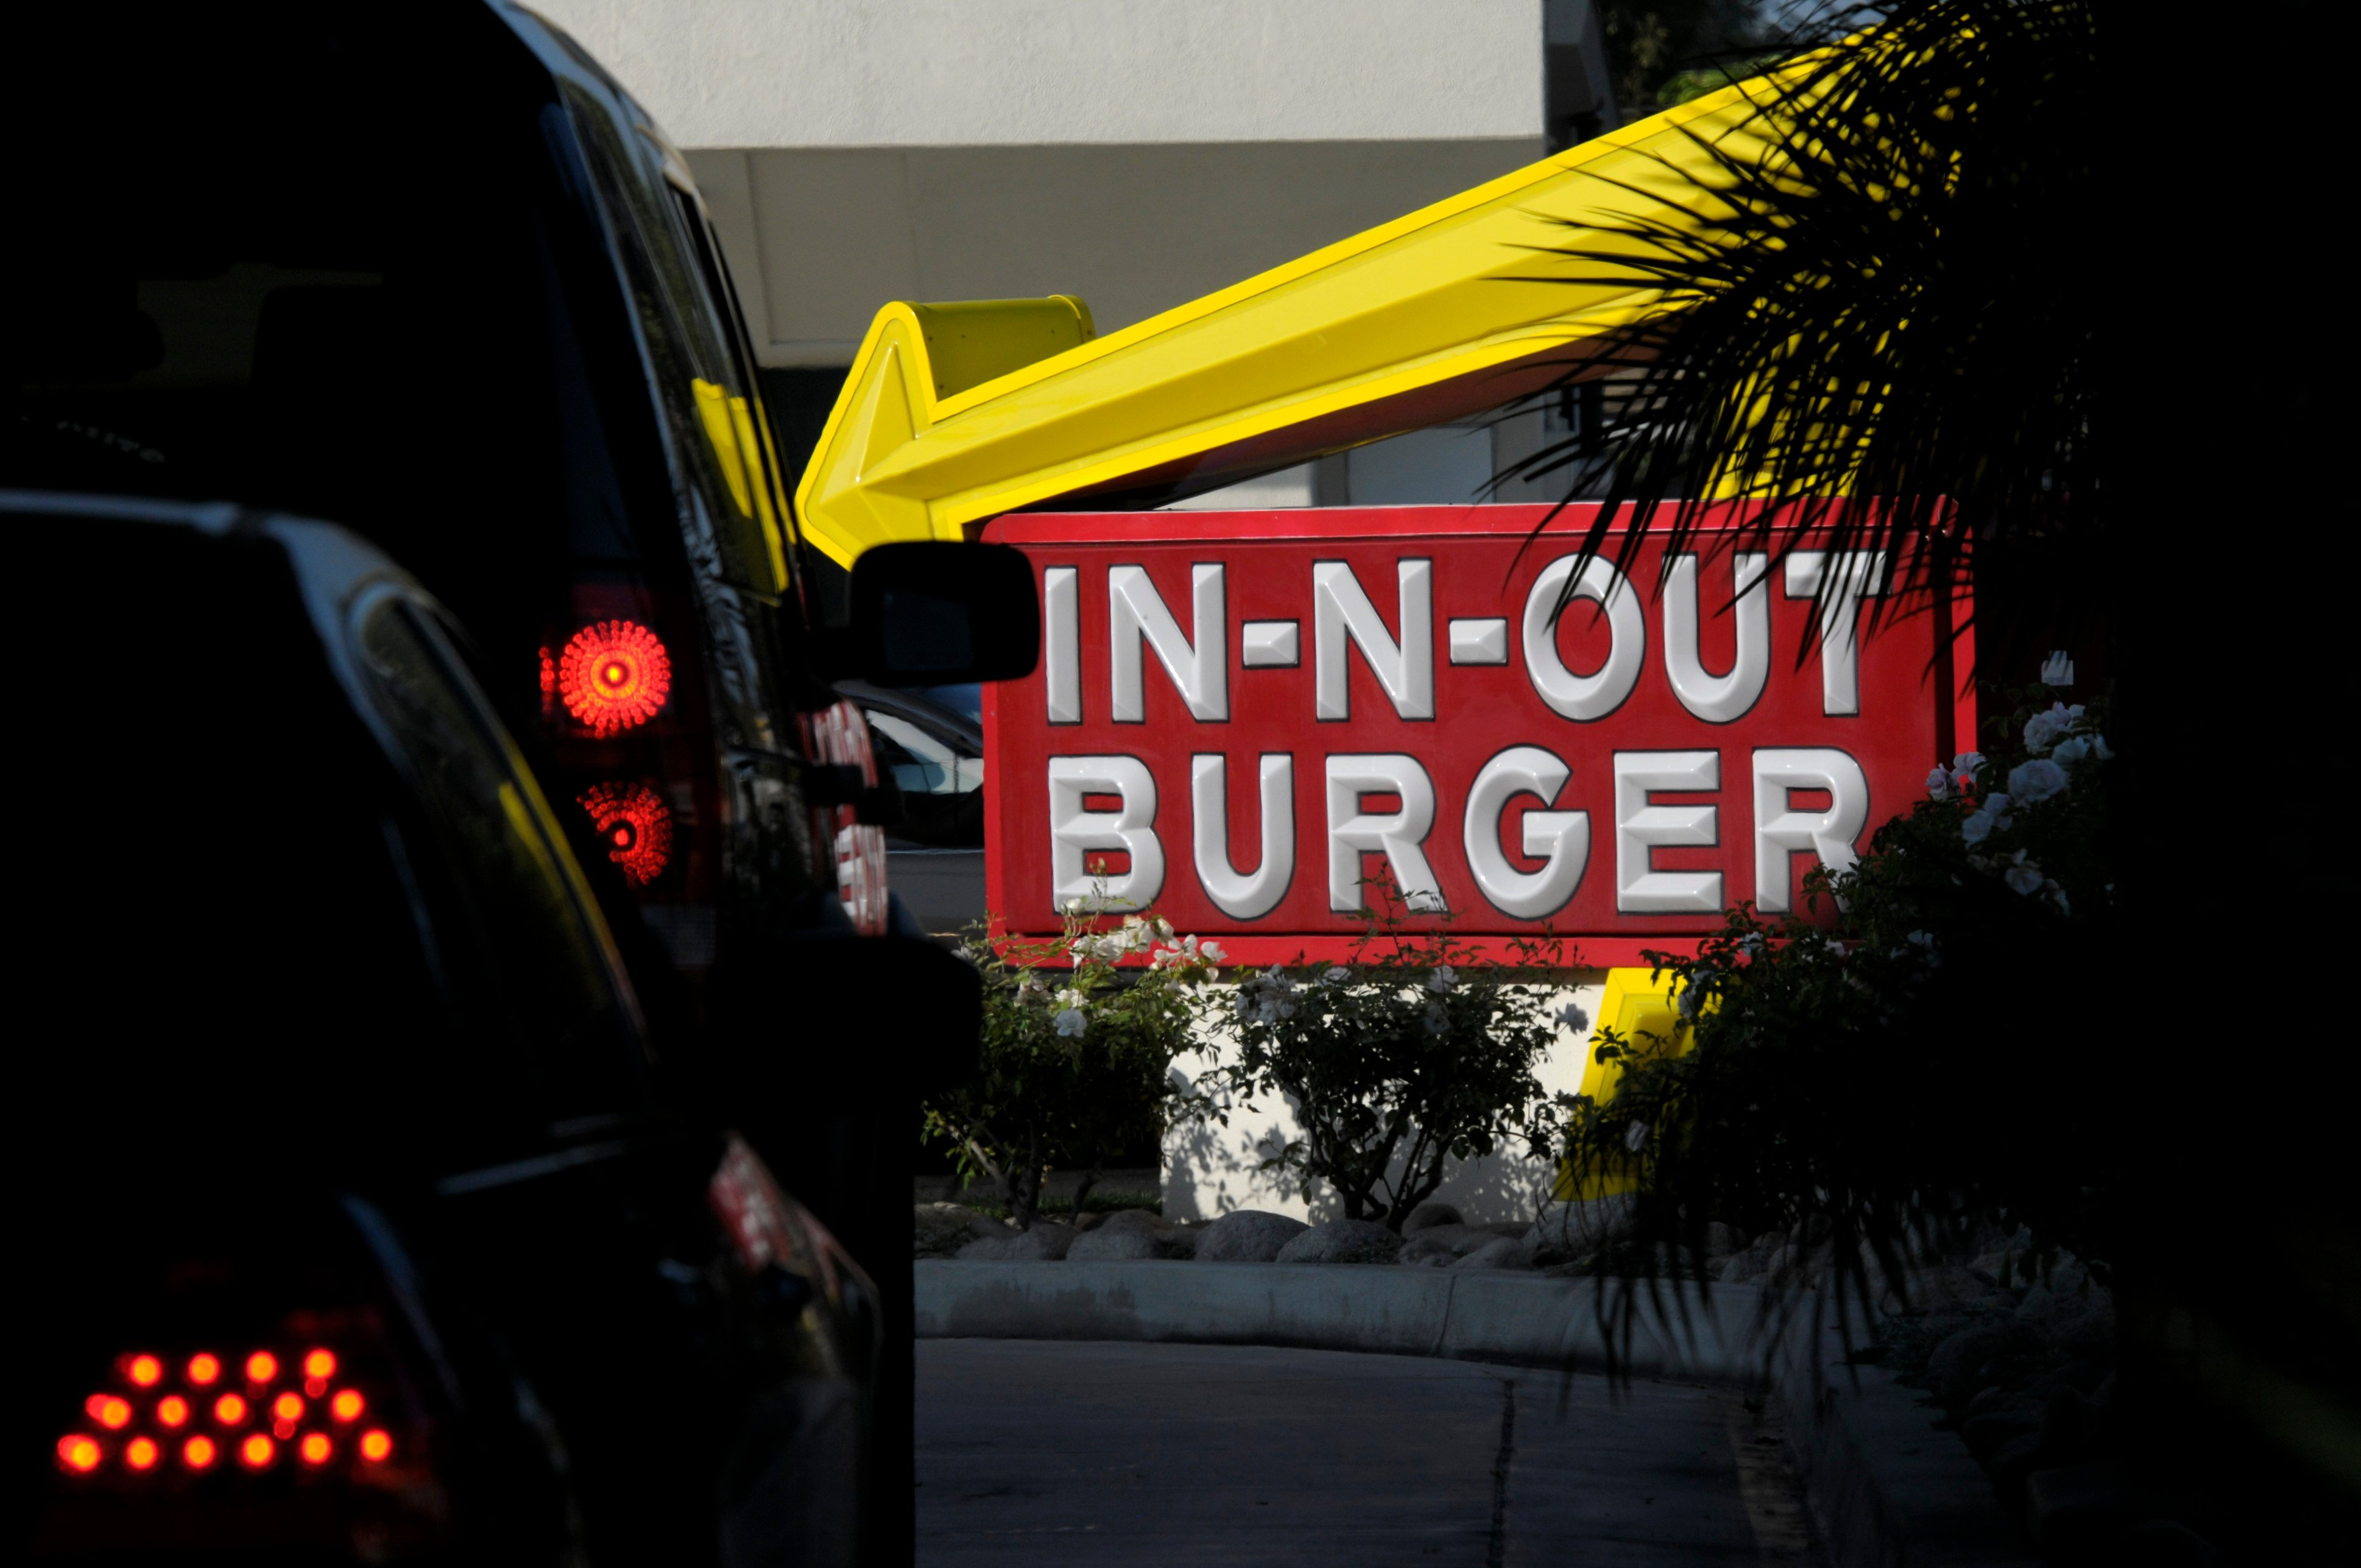 Cars line up in the drive-thru lane at In-N-Out Burger on Tuesday, June 8, 2010, in Baldwin Park, Calif. (AP Photo/Adam Lau)